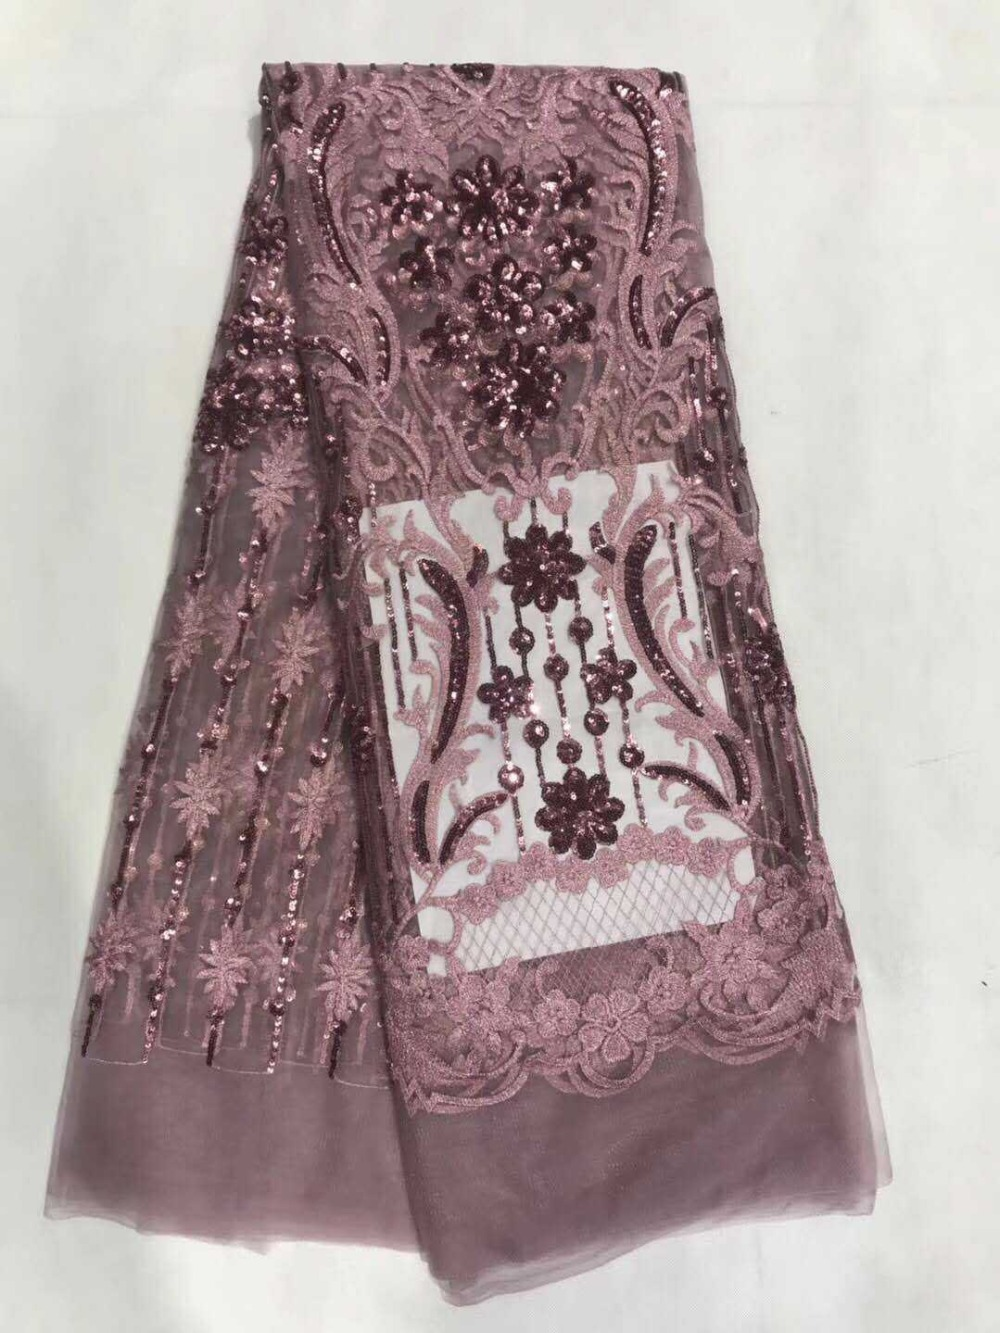 Panlonghome High Quality 5Yards 3D Three Dimensional Applique Lace Fabric Wedding Dress Costumes Sequins Embroidered Fabric JL39 in Lace from Home Garden